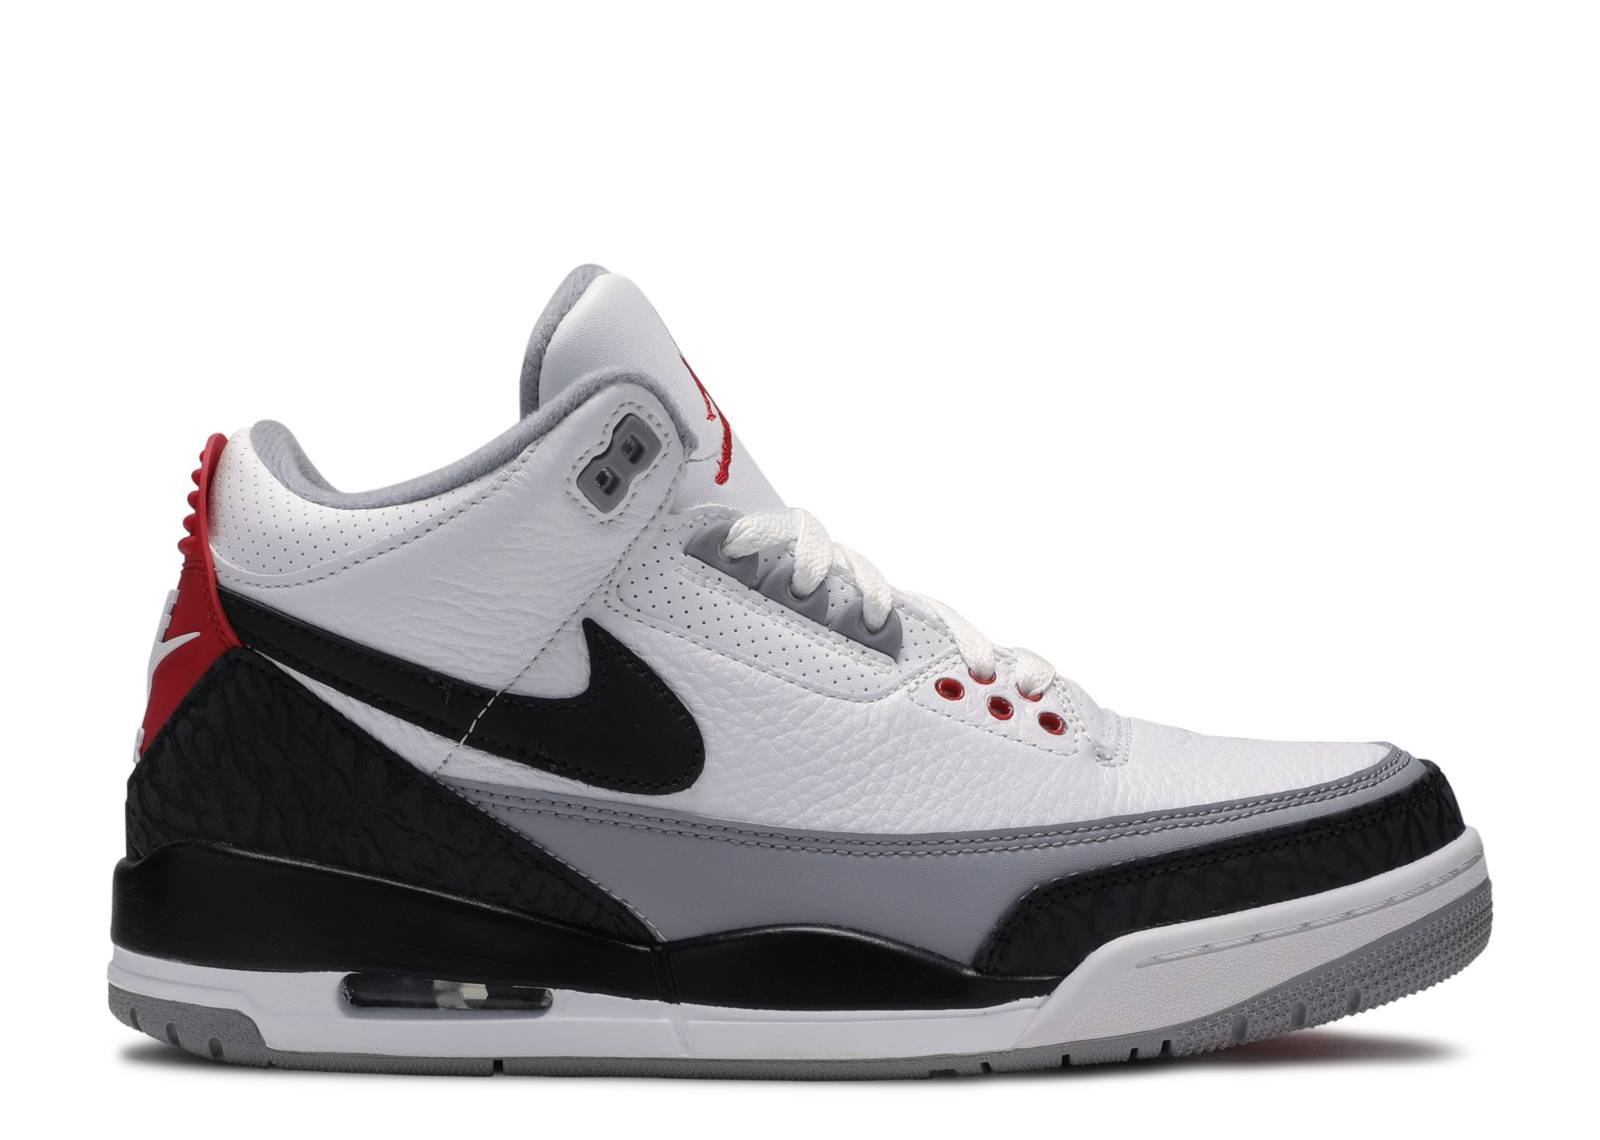 Air Jordan 3 Retro NRG  Tinker    Air Jordan   AQ3835 160   white     Air Jordan 3 Retro NRG  Tinker